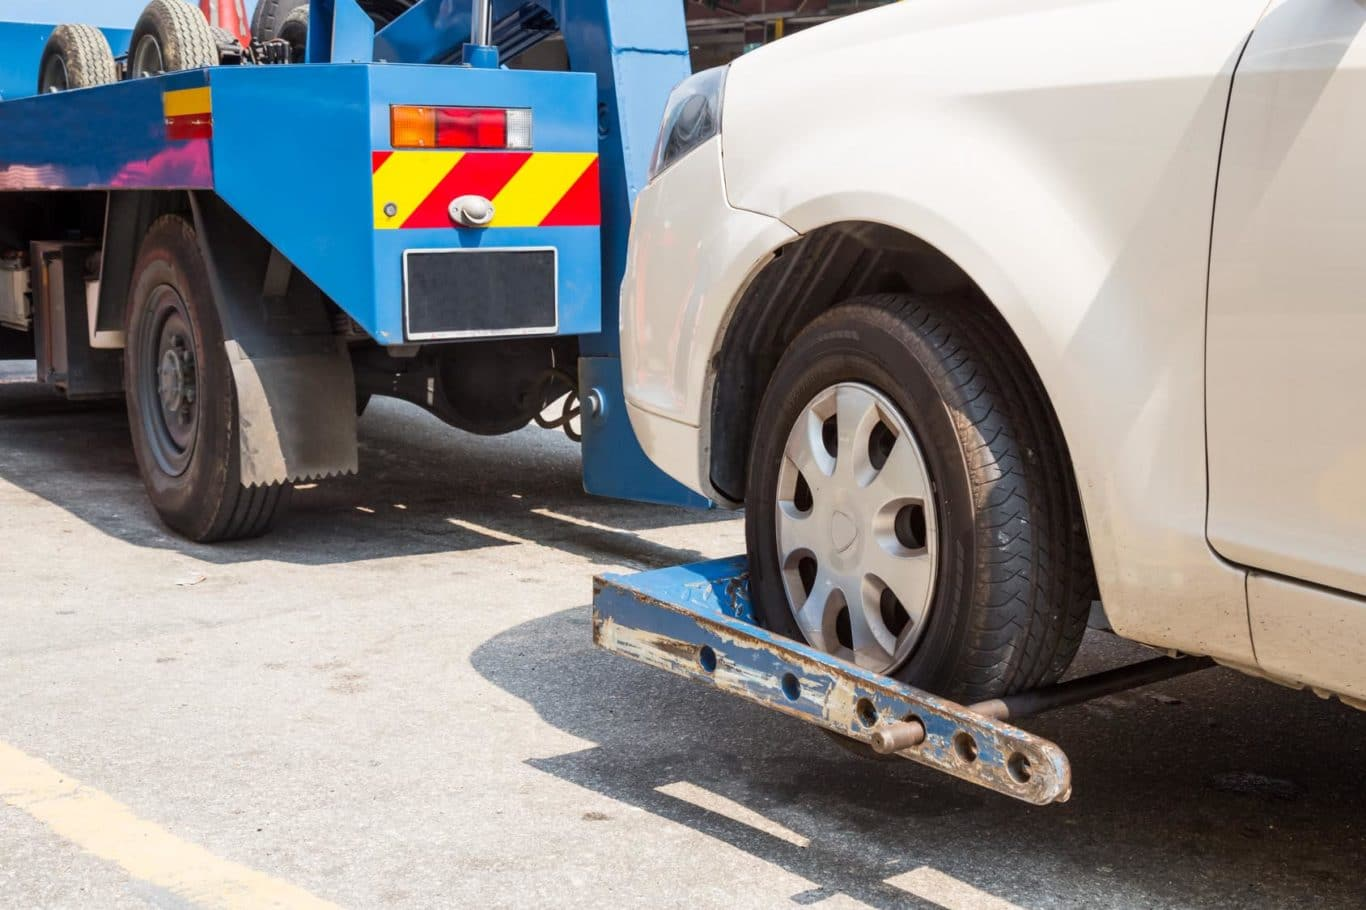 Tyrrelstown expert Towing And Recovery Dublin services